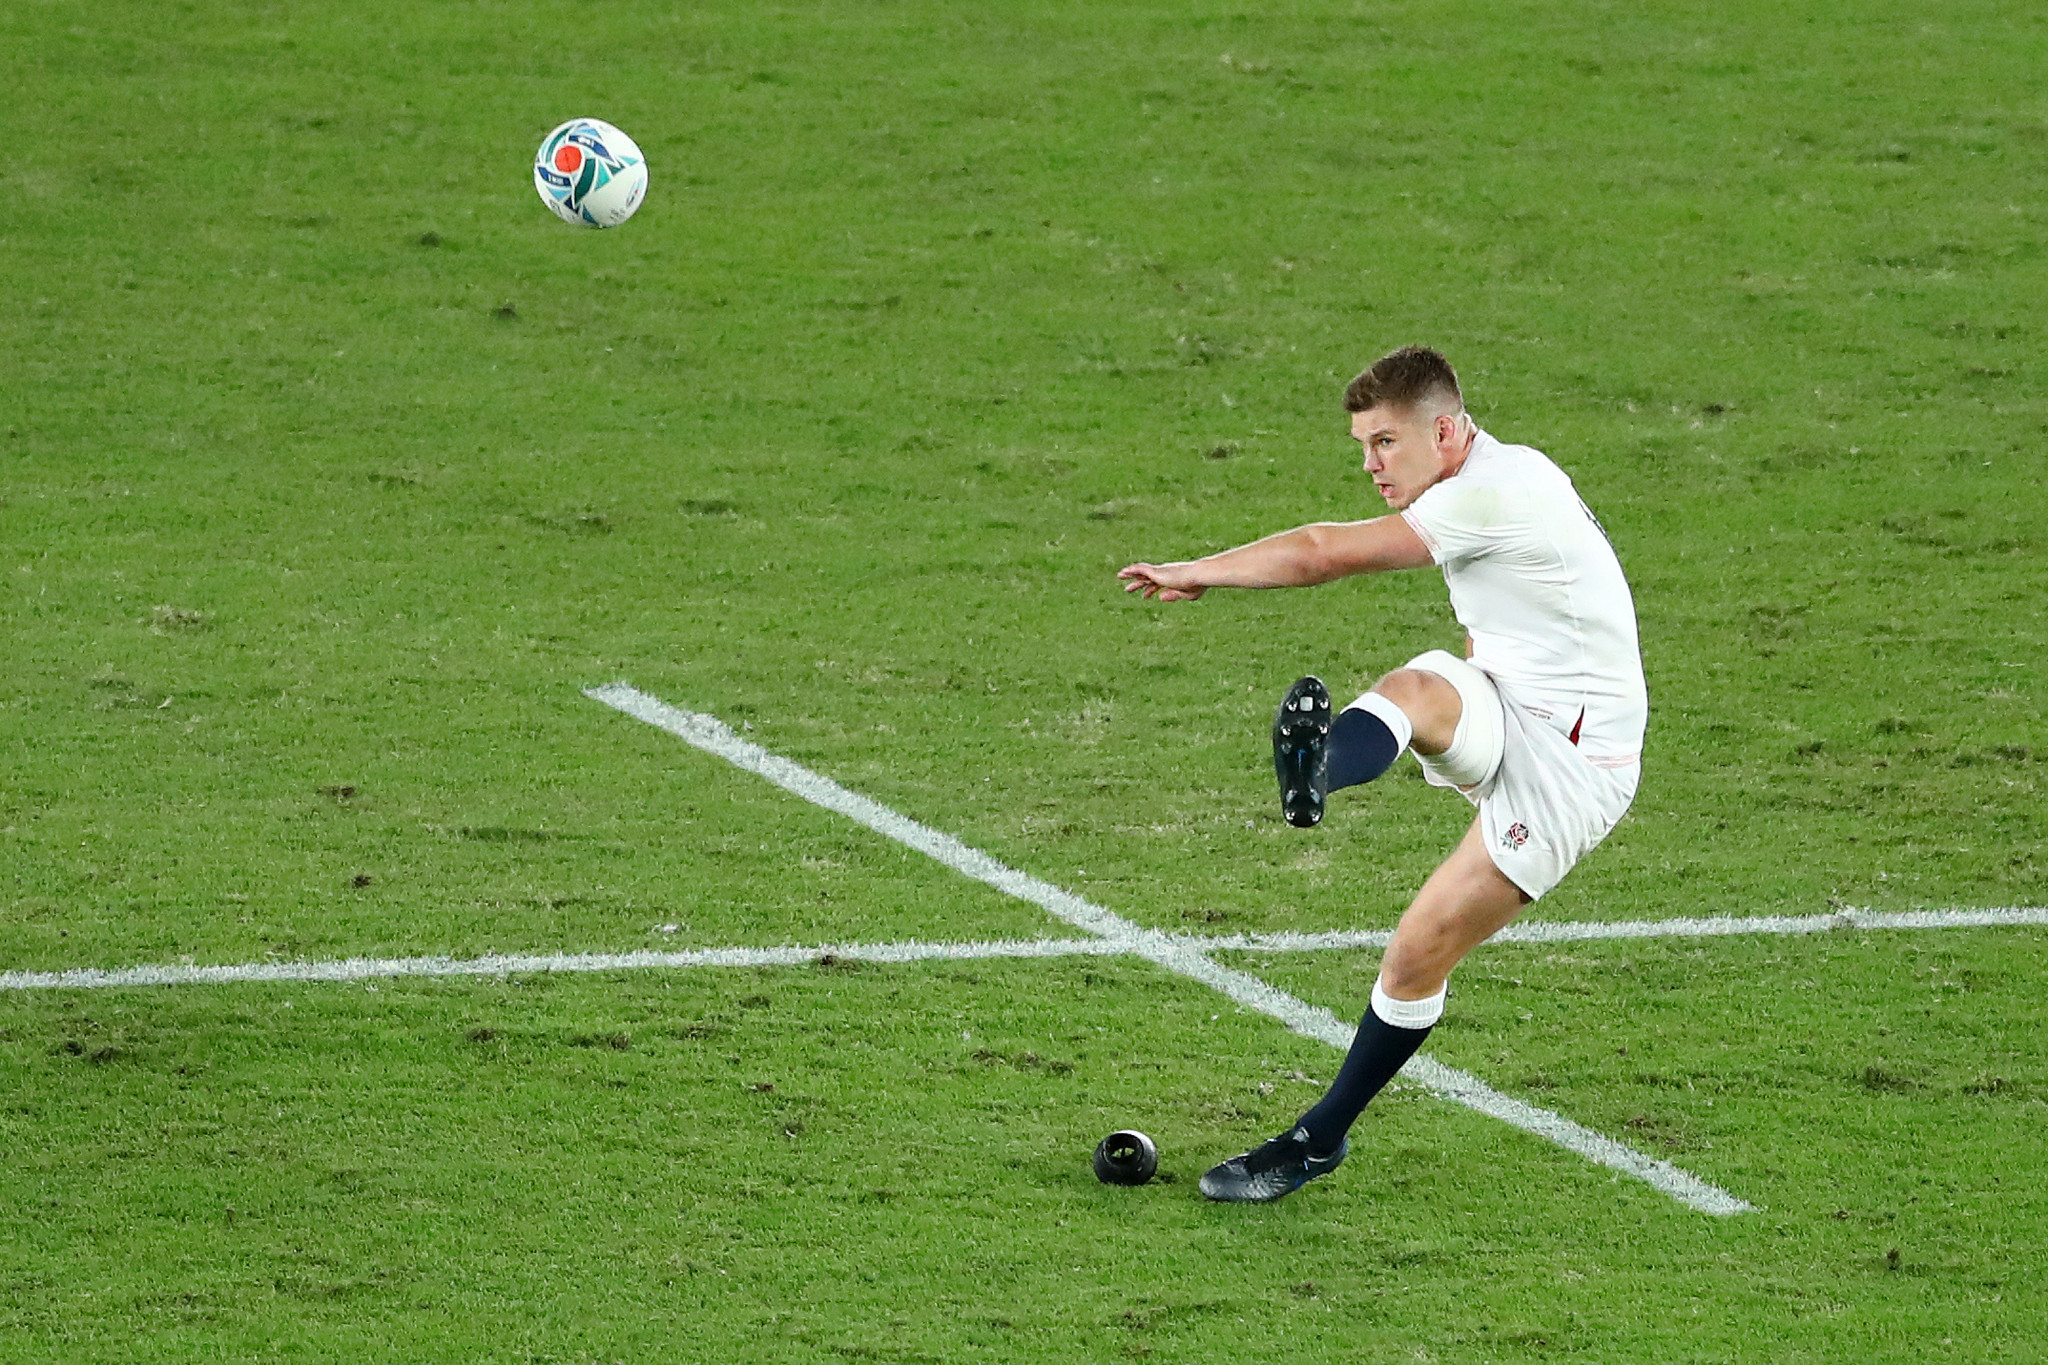 England captain Owen Farrell scored all 12 of his team's points ©Getty Images